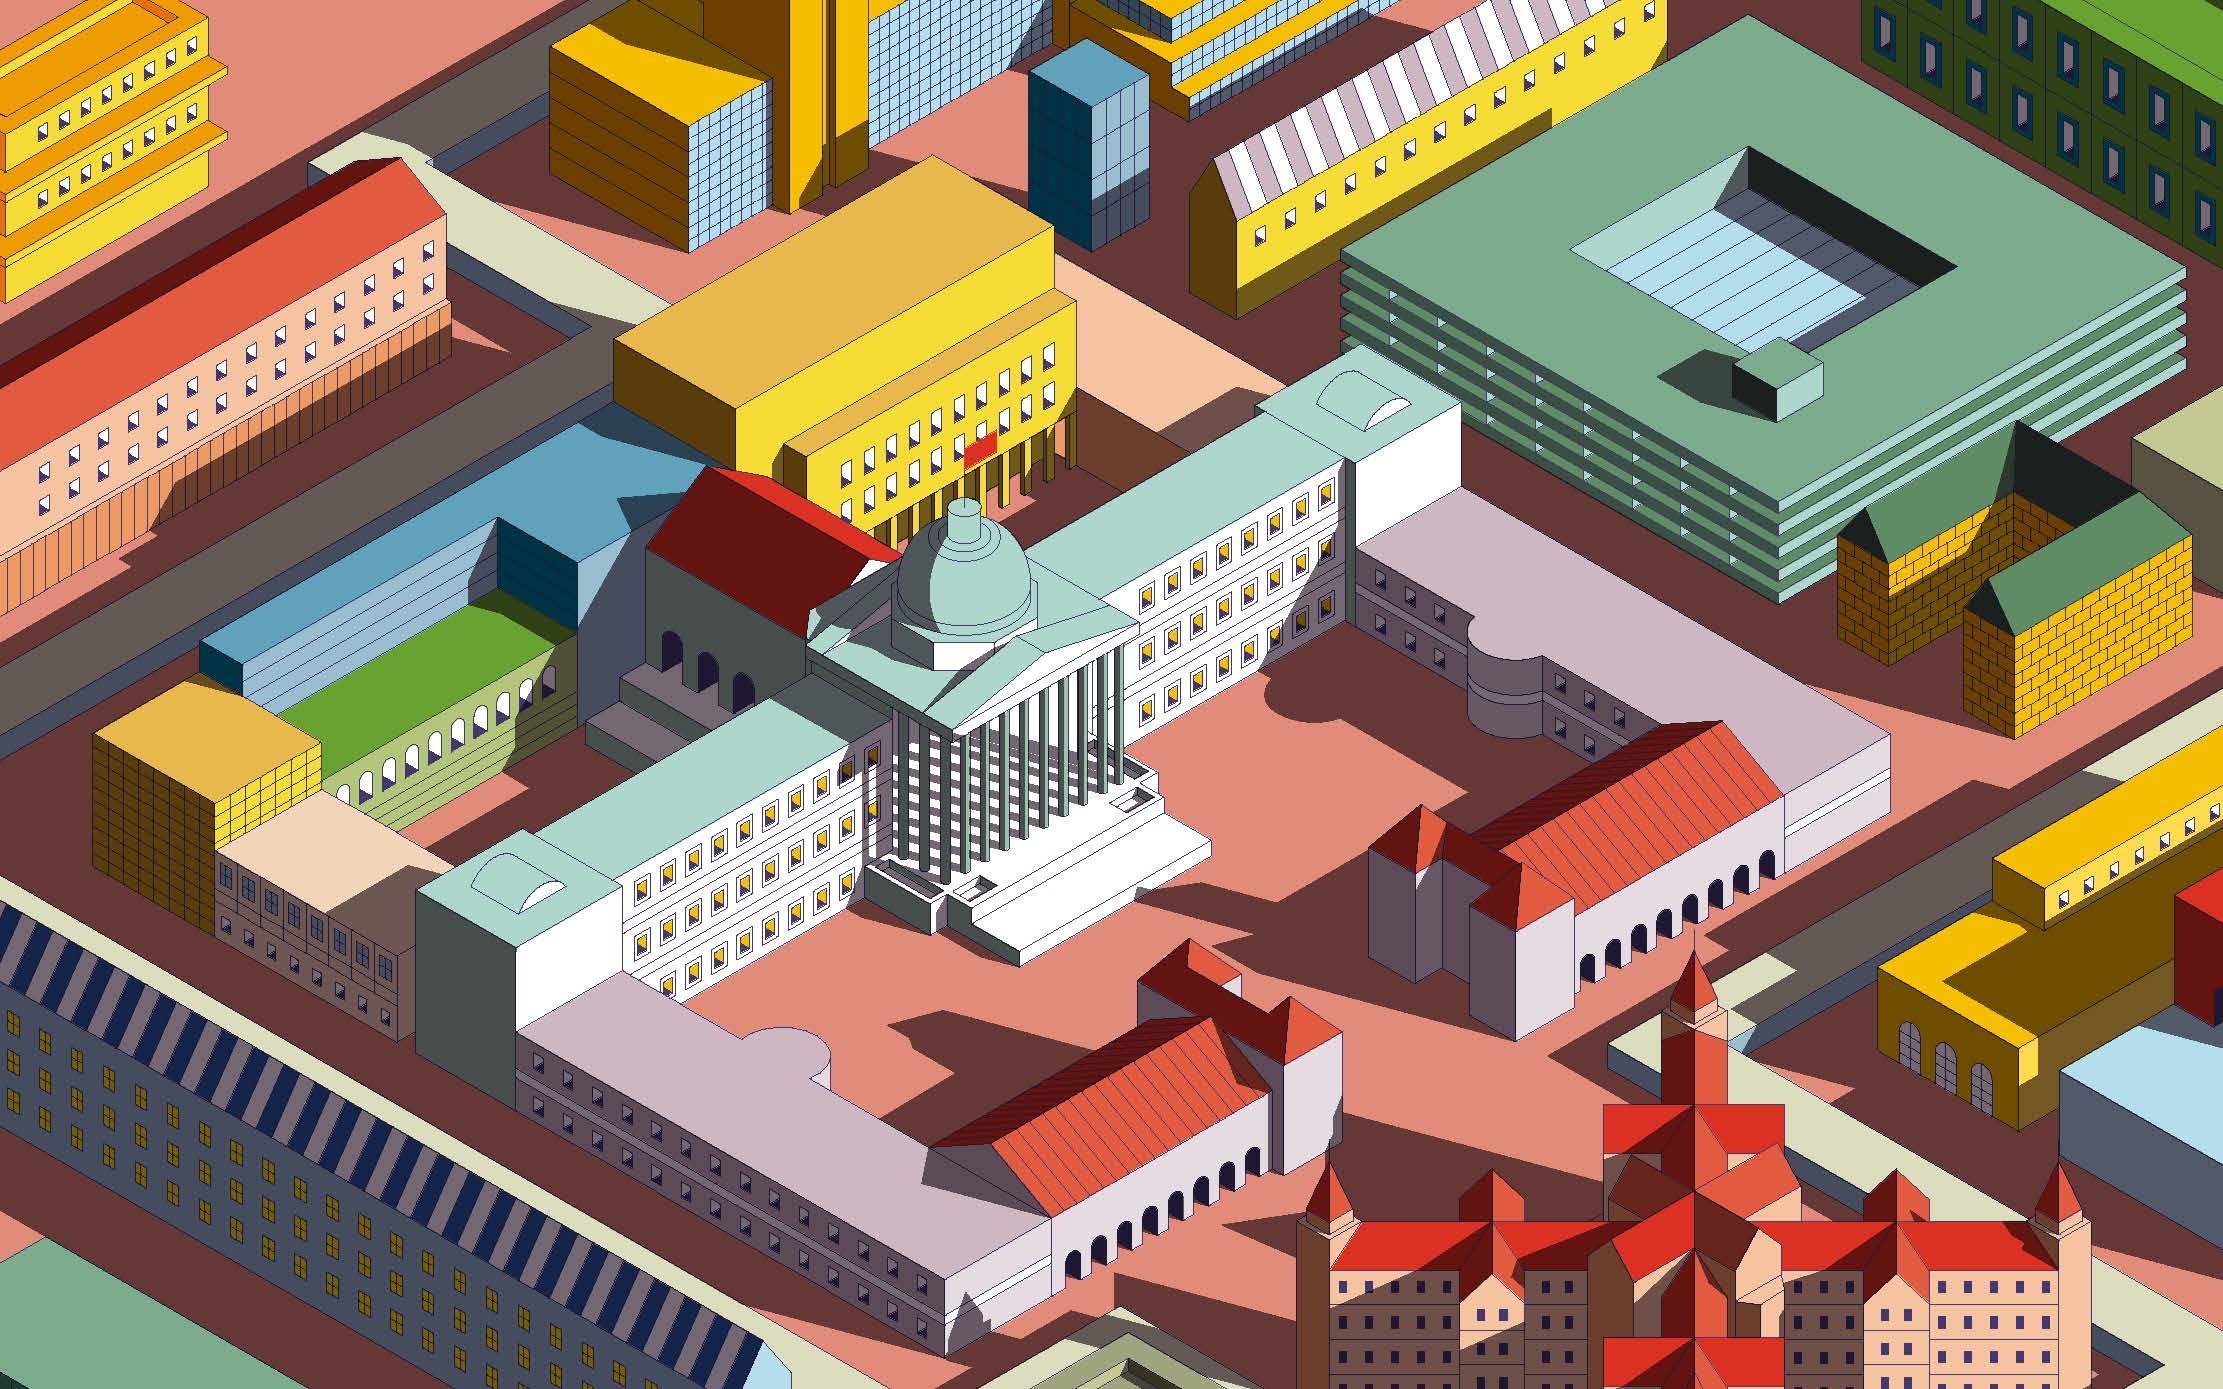 Illustration from New Students' Guide cover of famous UCL buildings